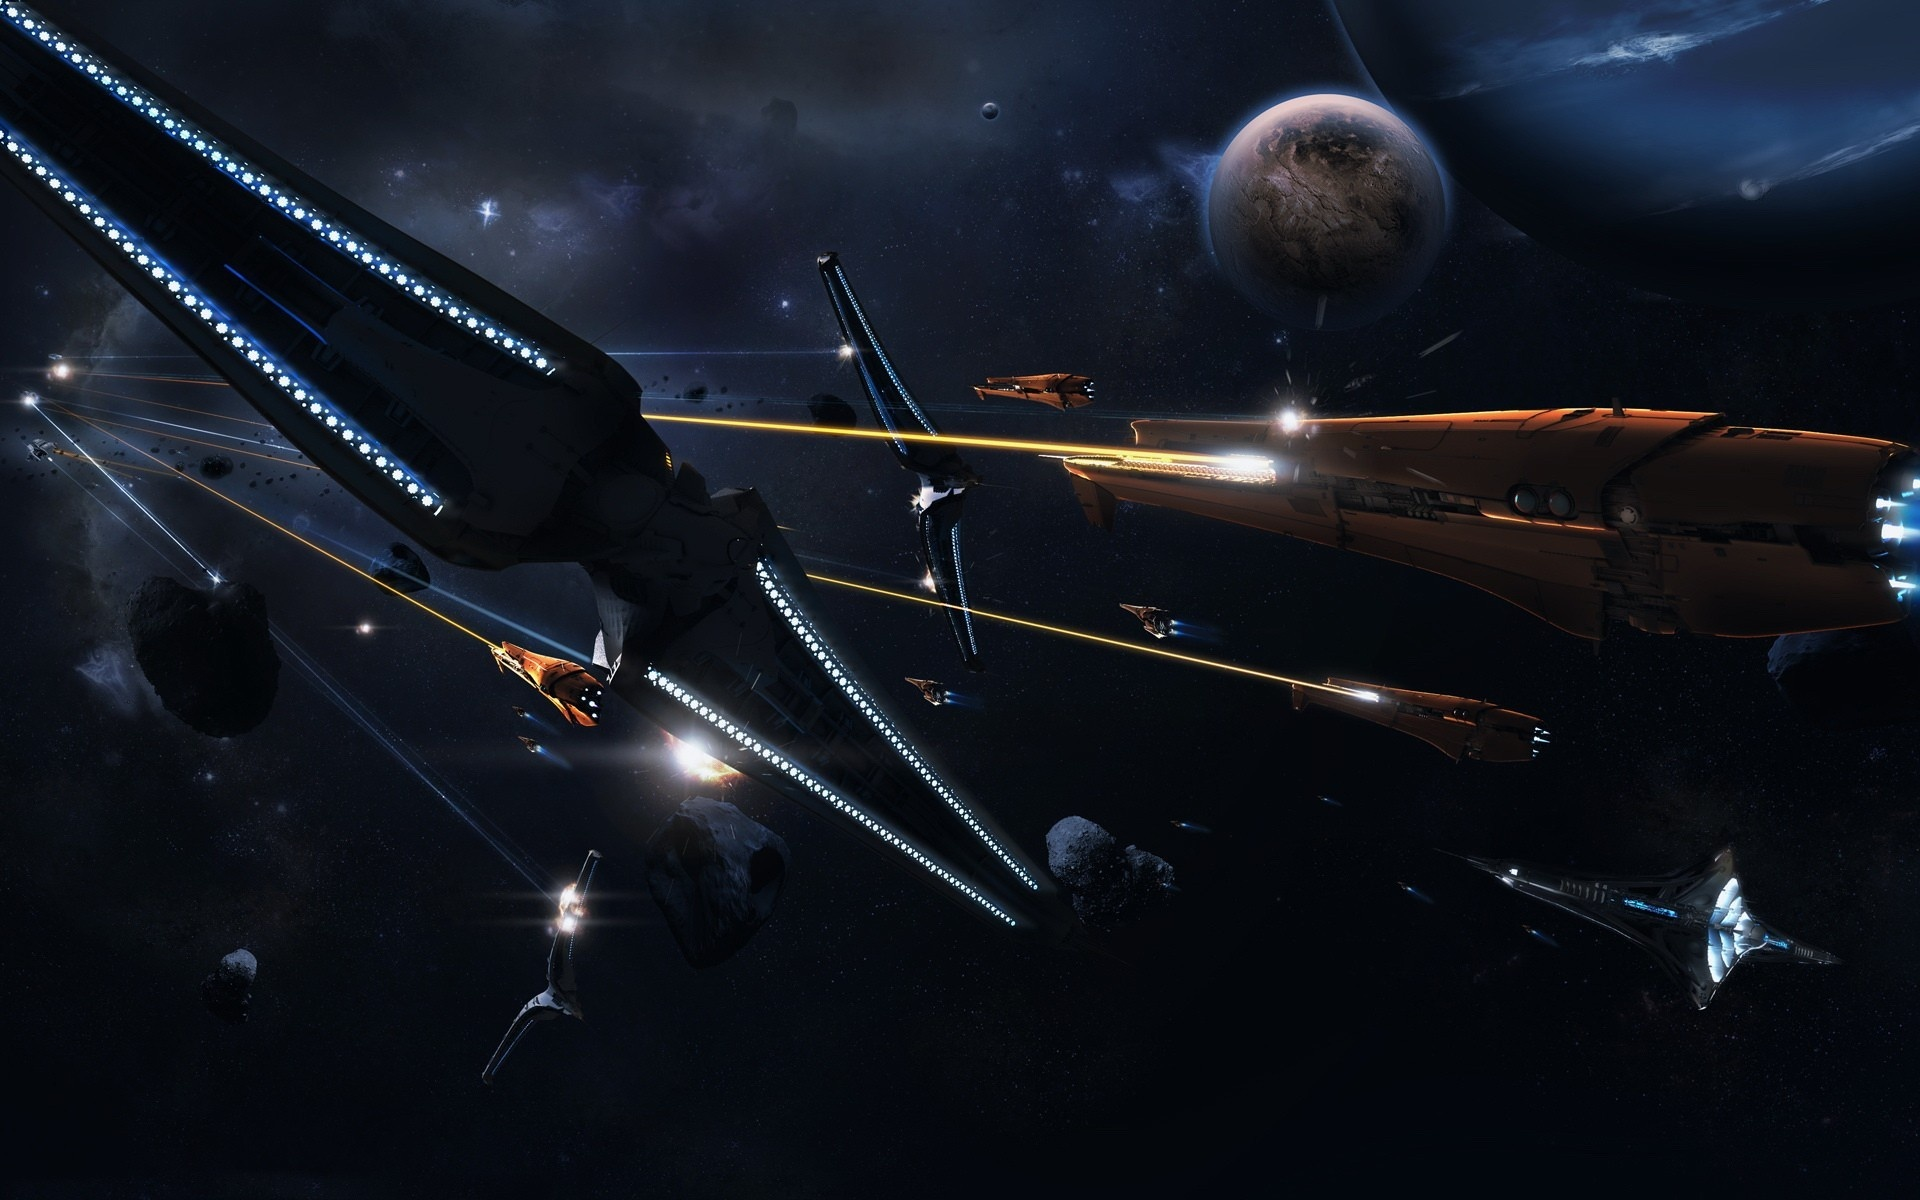 D Hd Wallpapers 1366x768 Battle Full Hd Wallpaper And Background Image 1920x1200